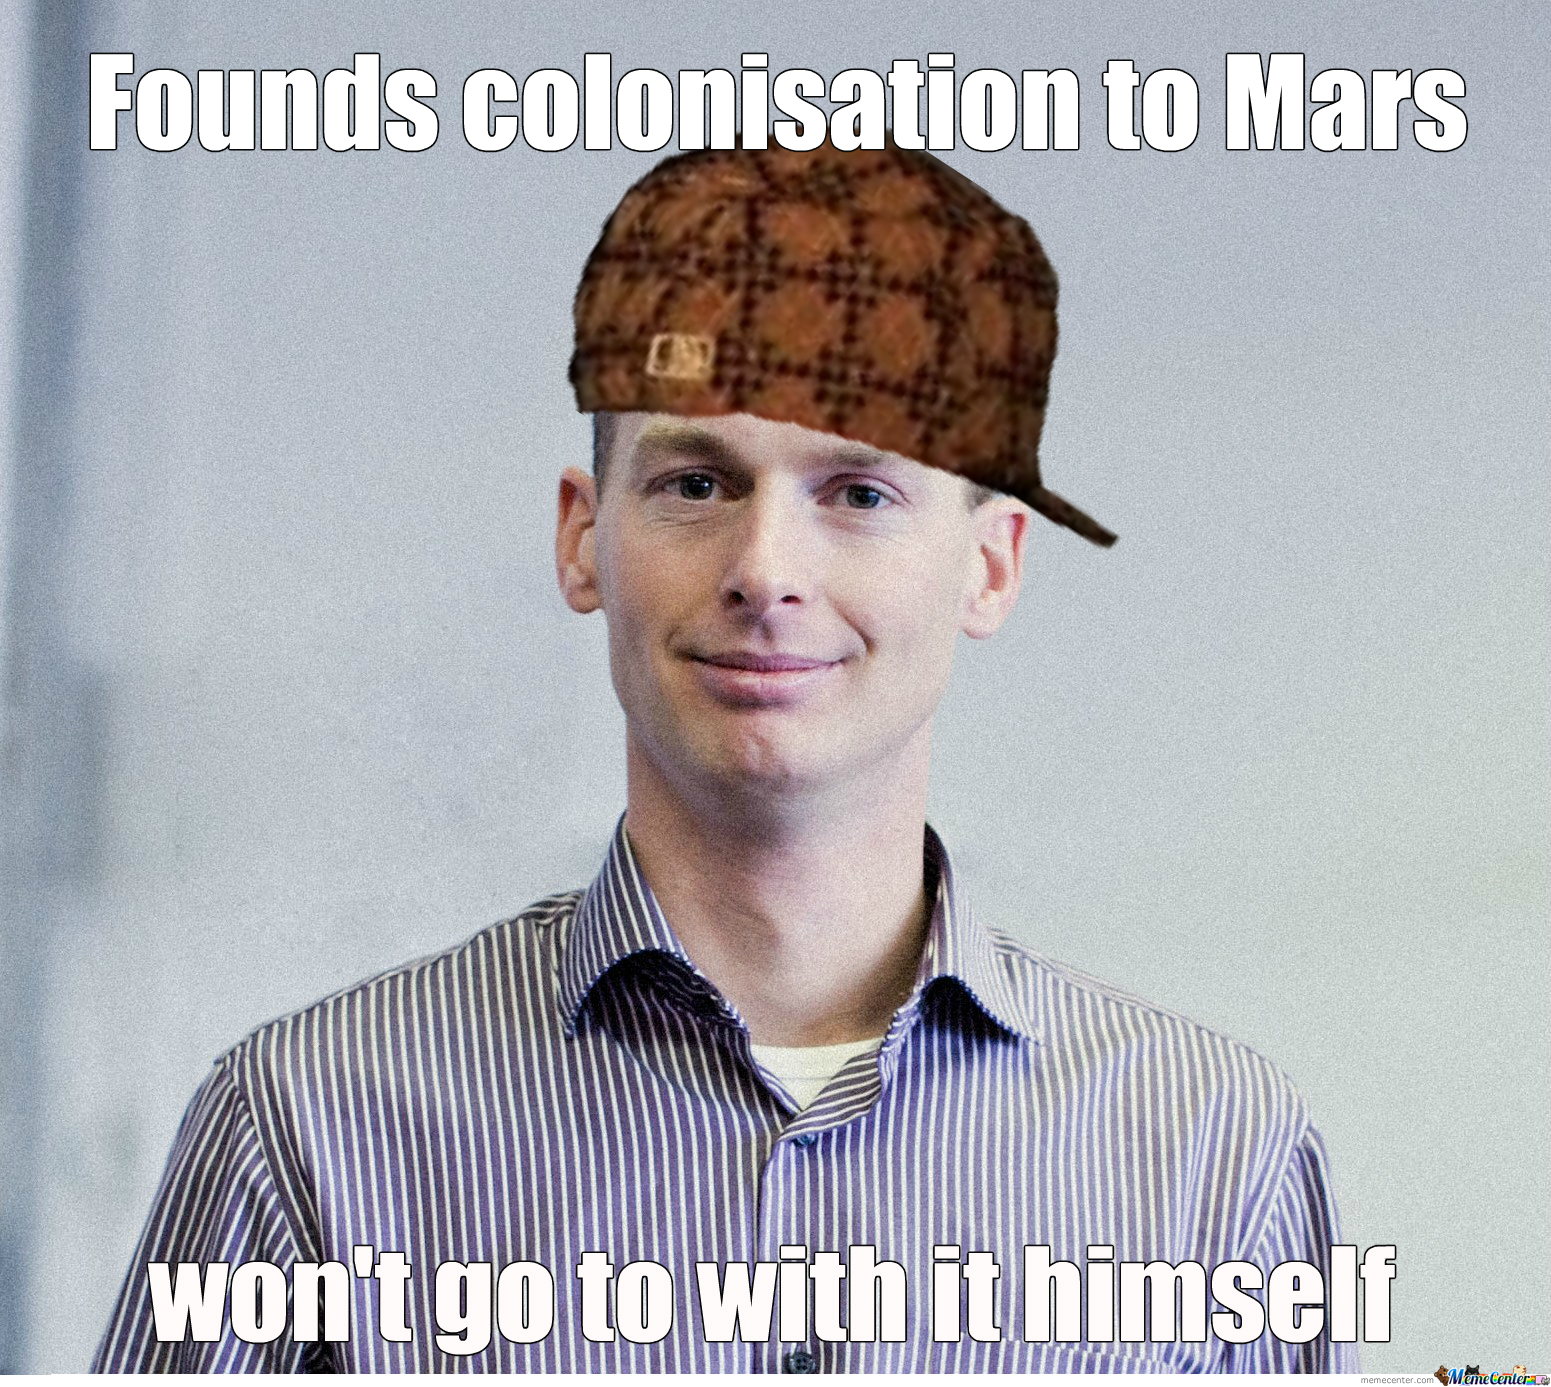 Scumbag Bas Lansdorp, Putting Trust In His Project...